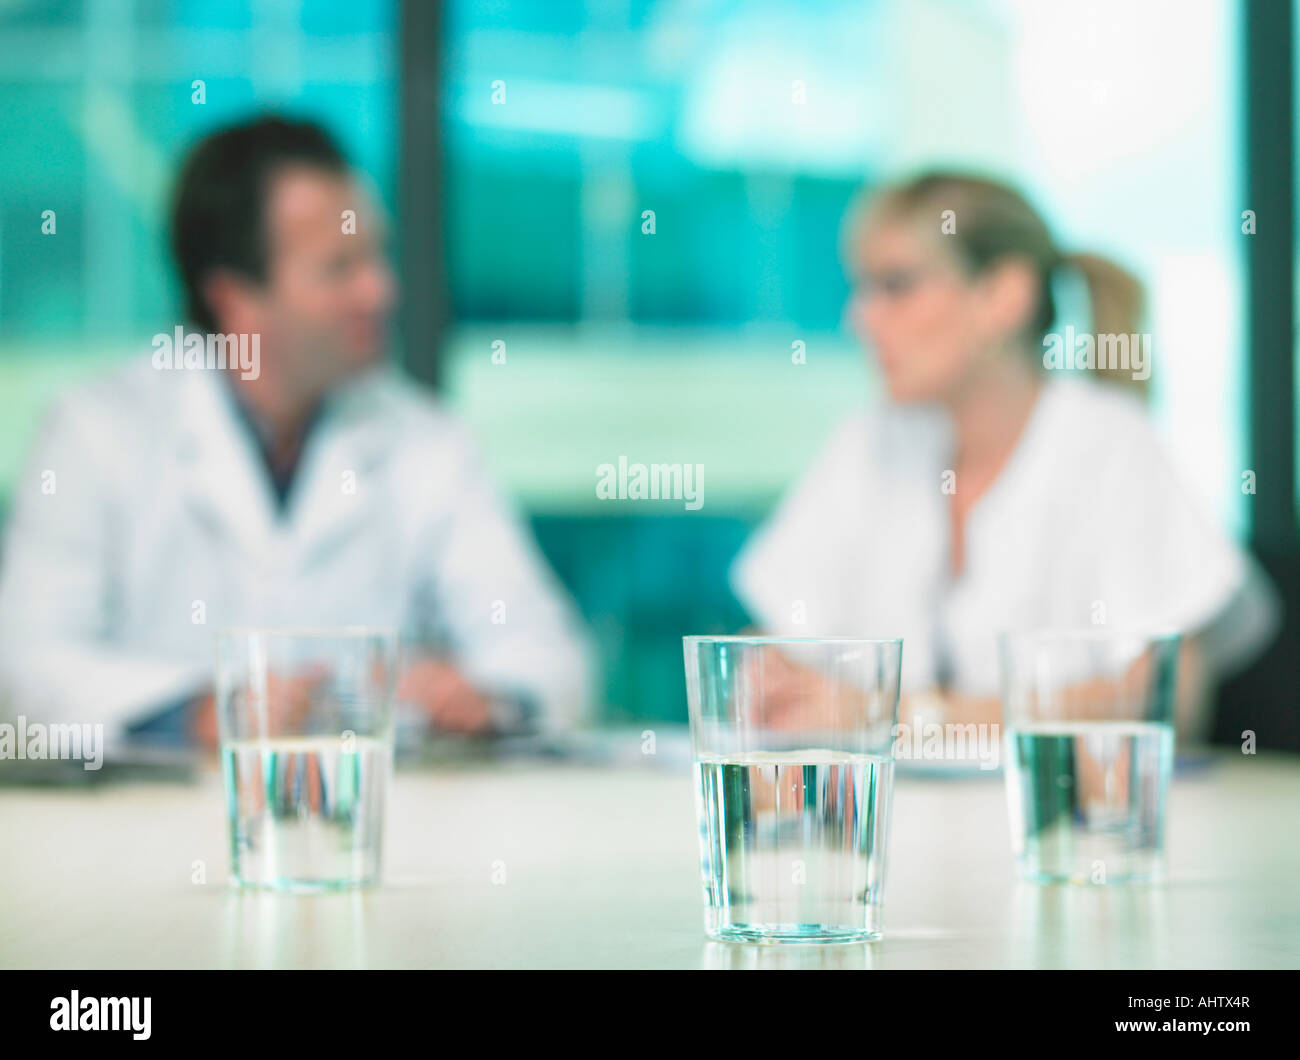 Two doctors in a business meeting. Out of focus. Close up on glasses of water in foreground. - Stock Image